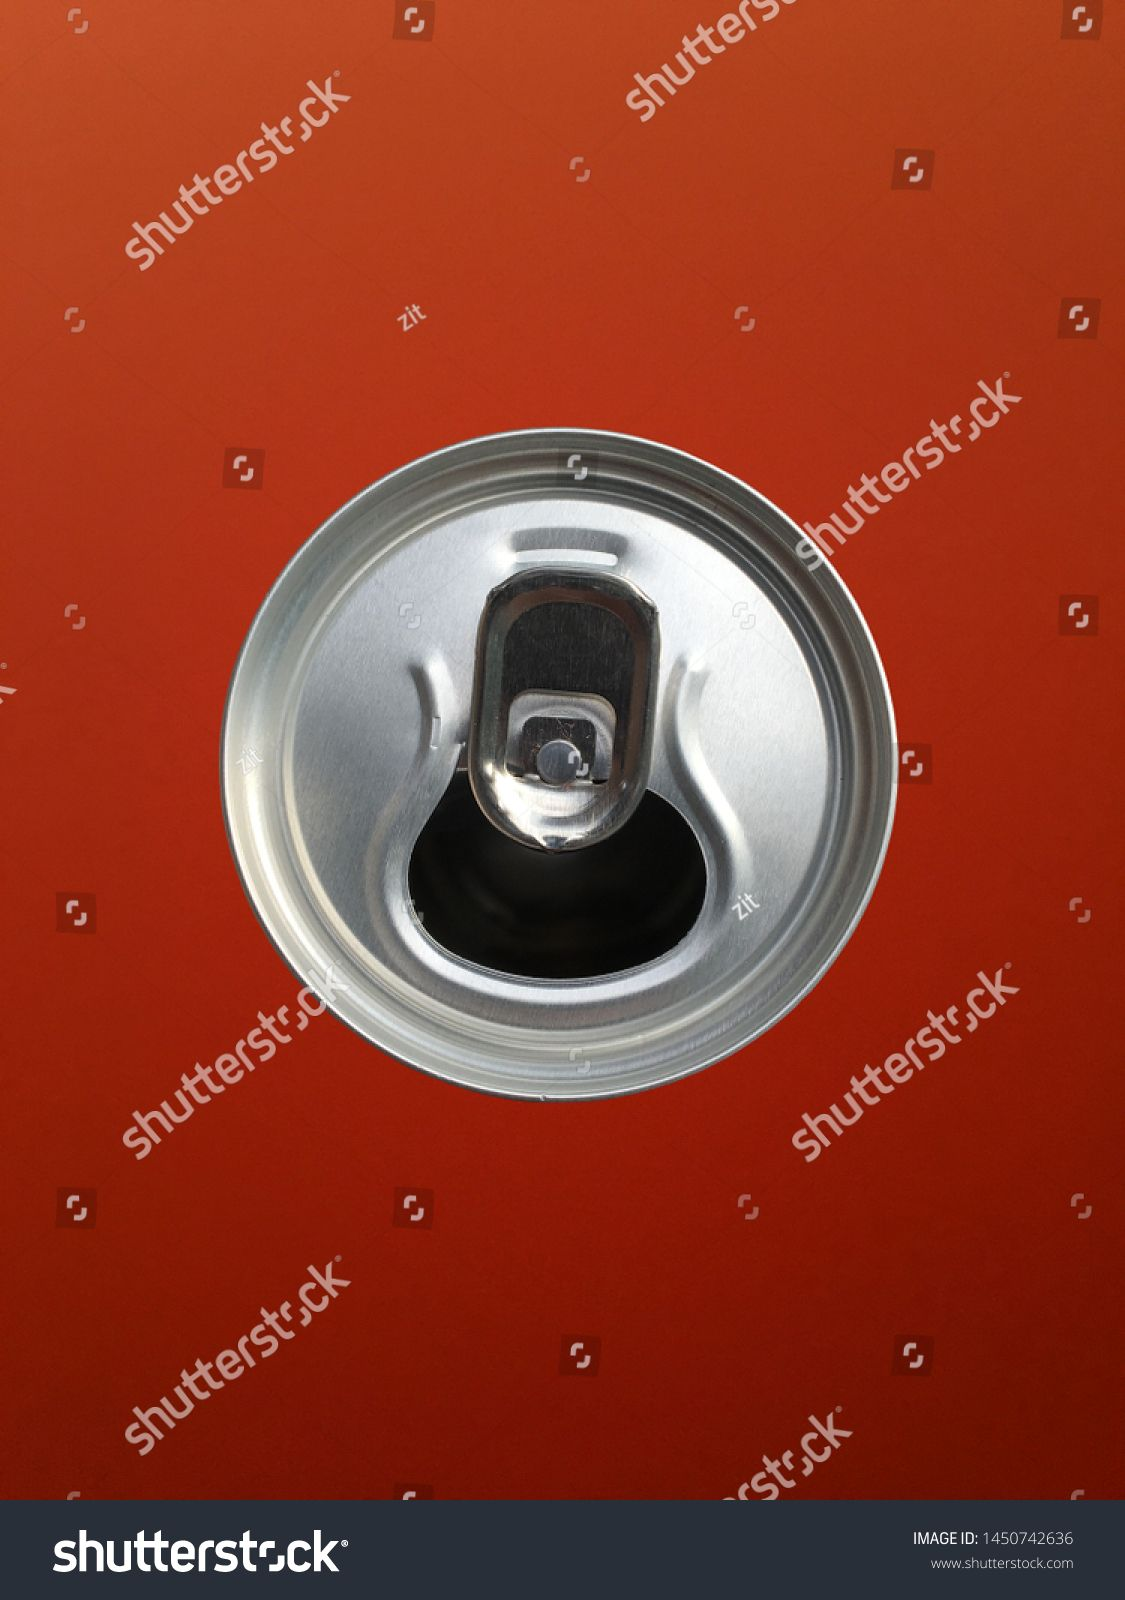 Open Aluminum Can With Red Background Sponsored Aff Aluminum Open Background Red In 2020 Wine Bottle Glass Wine Bottle Wine Glass